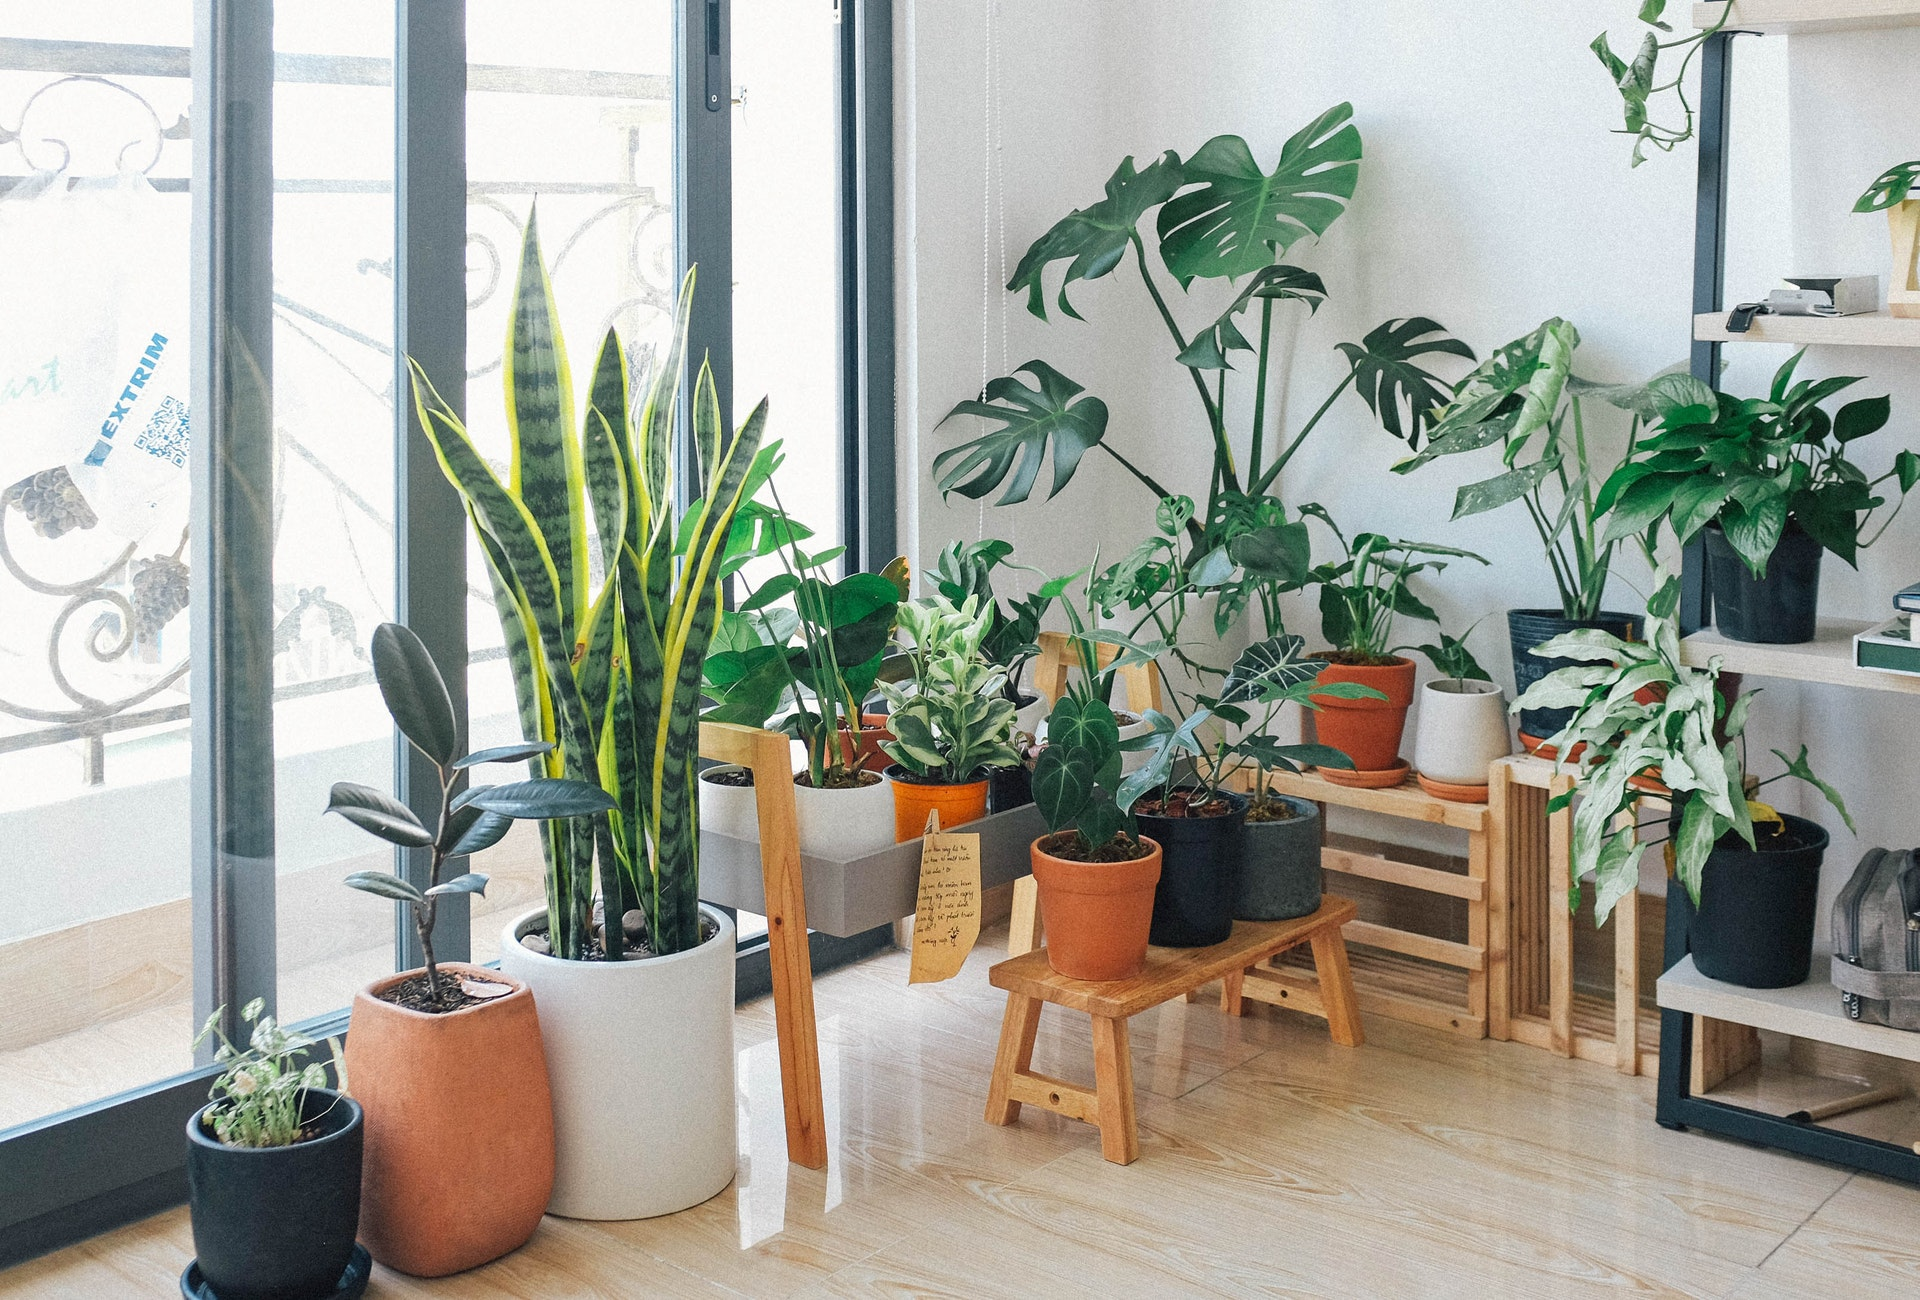 Beautiful house plants making your home the most eco friendly it can be.